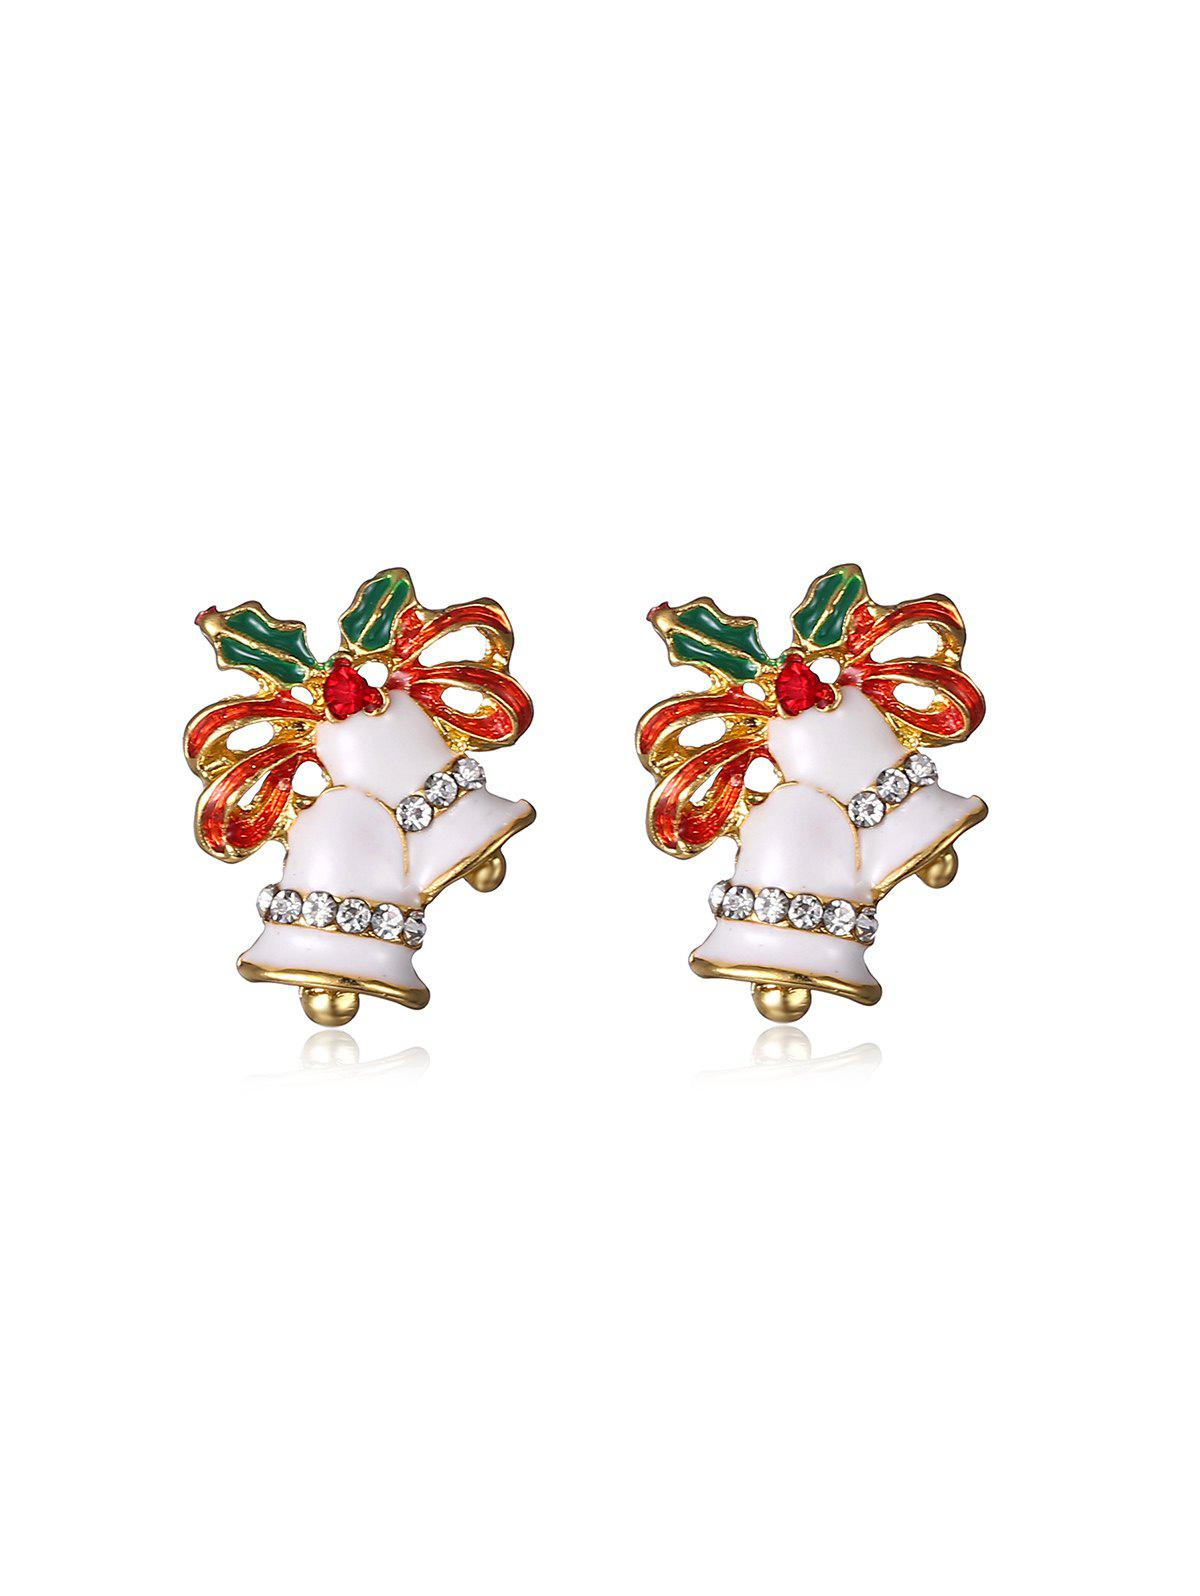 Affordable Rhinestone Bell Earrings